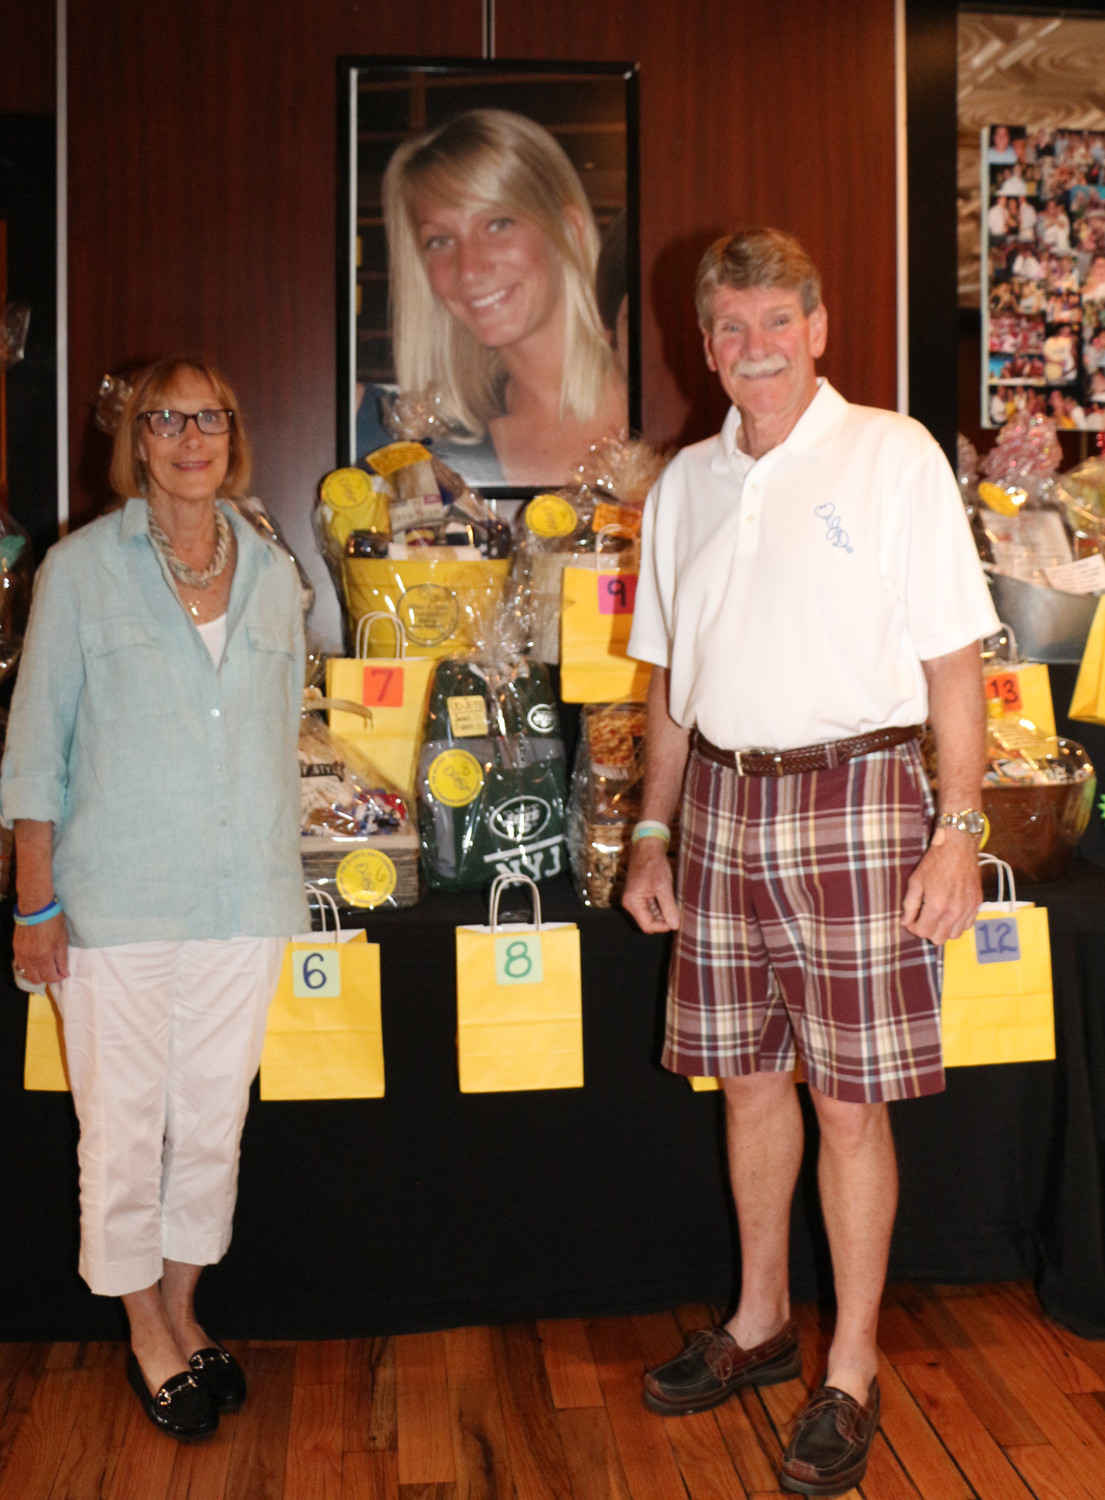 Virginia and Robert Daly put together baskets to be raffled off during a fundraiser on June 9 for the Jillian E. Daly Foundation, named for their daughter.